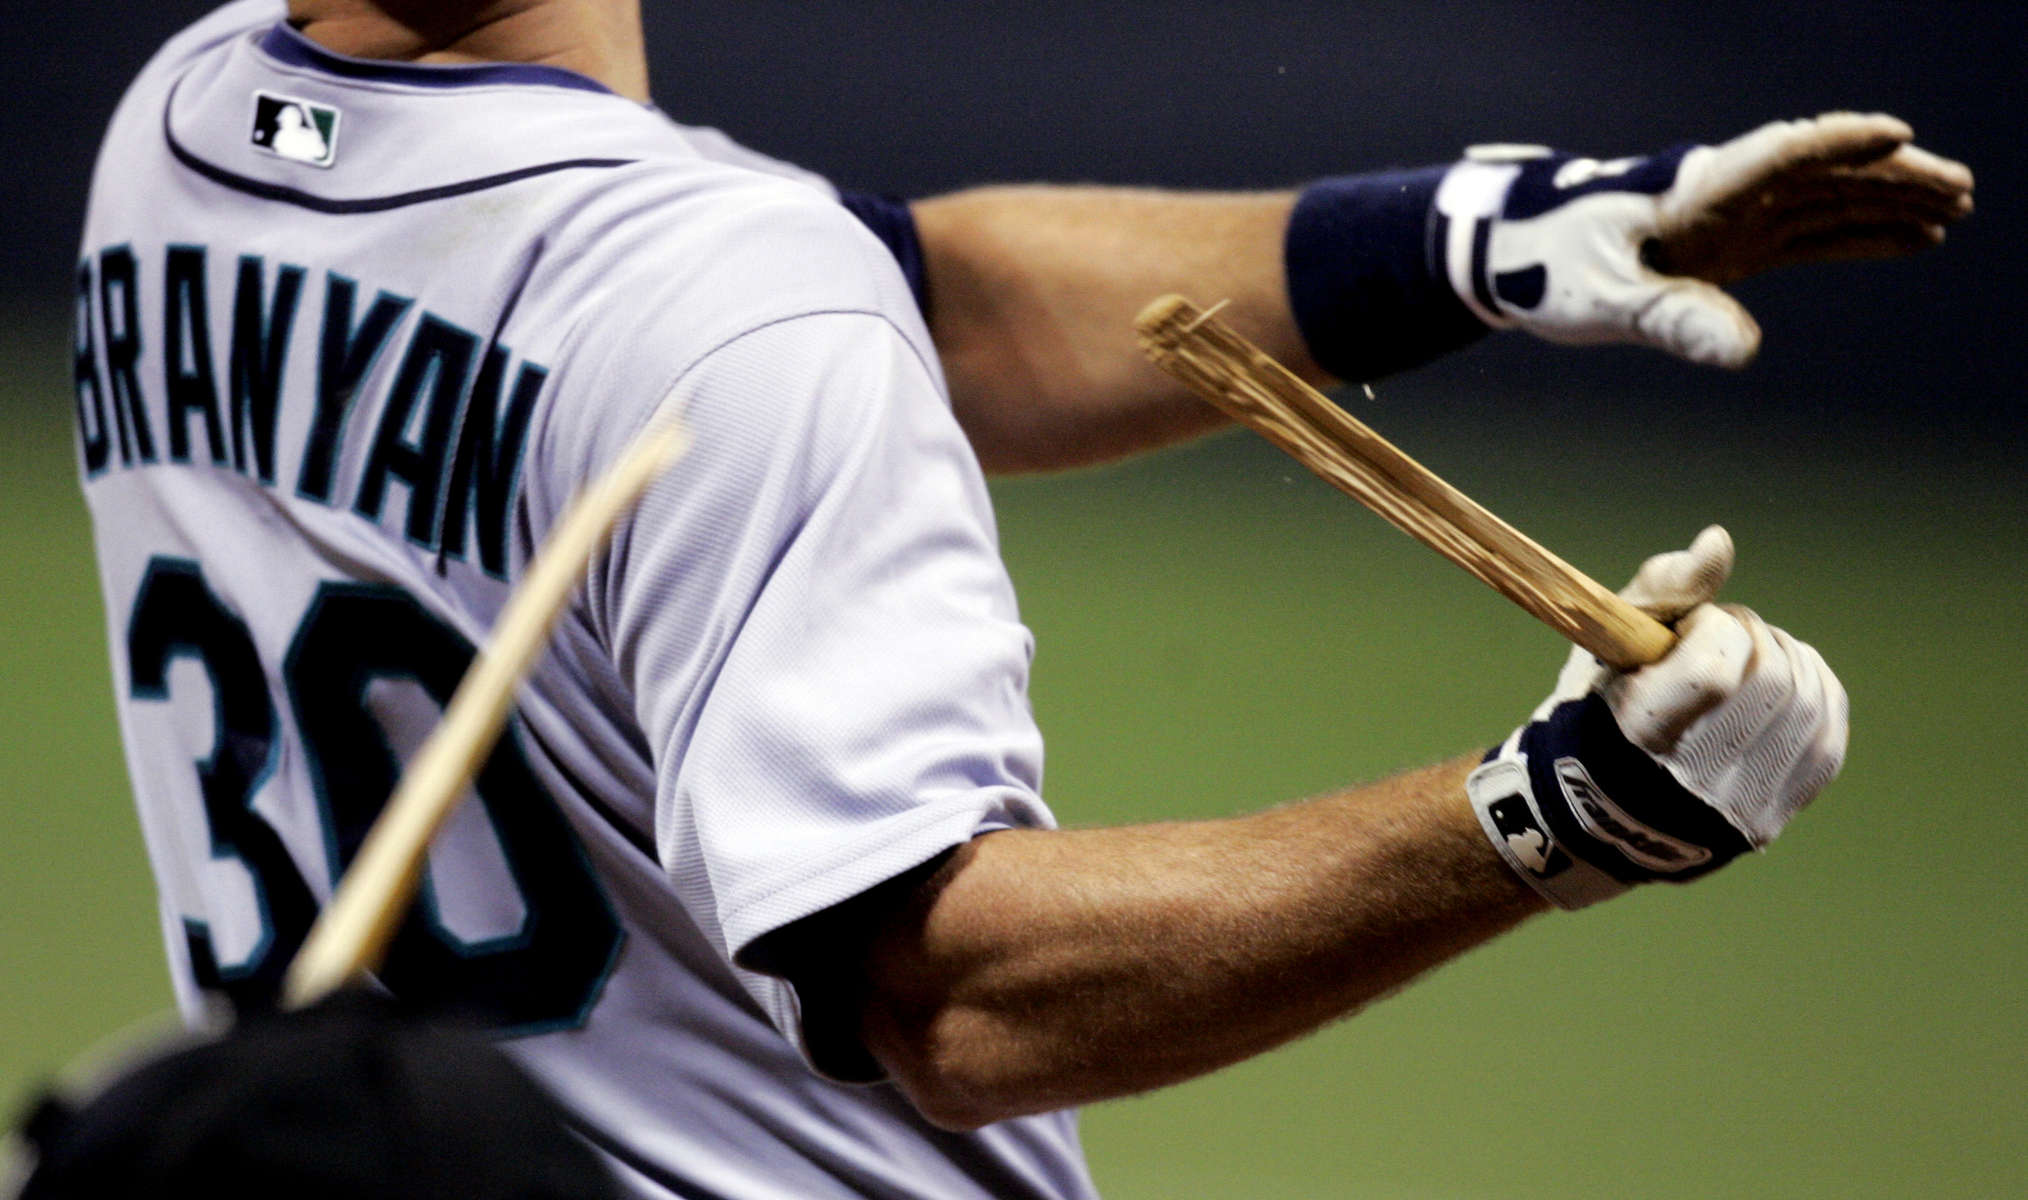 Seattle's Russell Branyan snaps his bat during the fifth inning during the Twins season opener in Minneapolis, Minn.